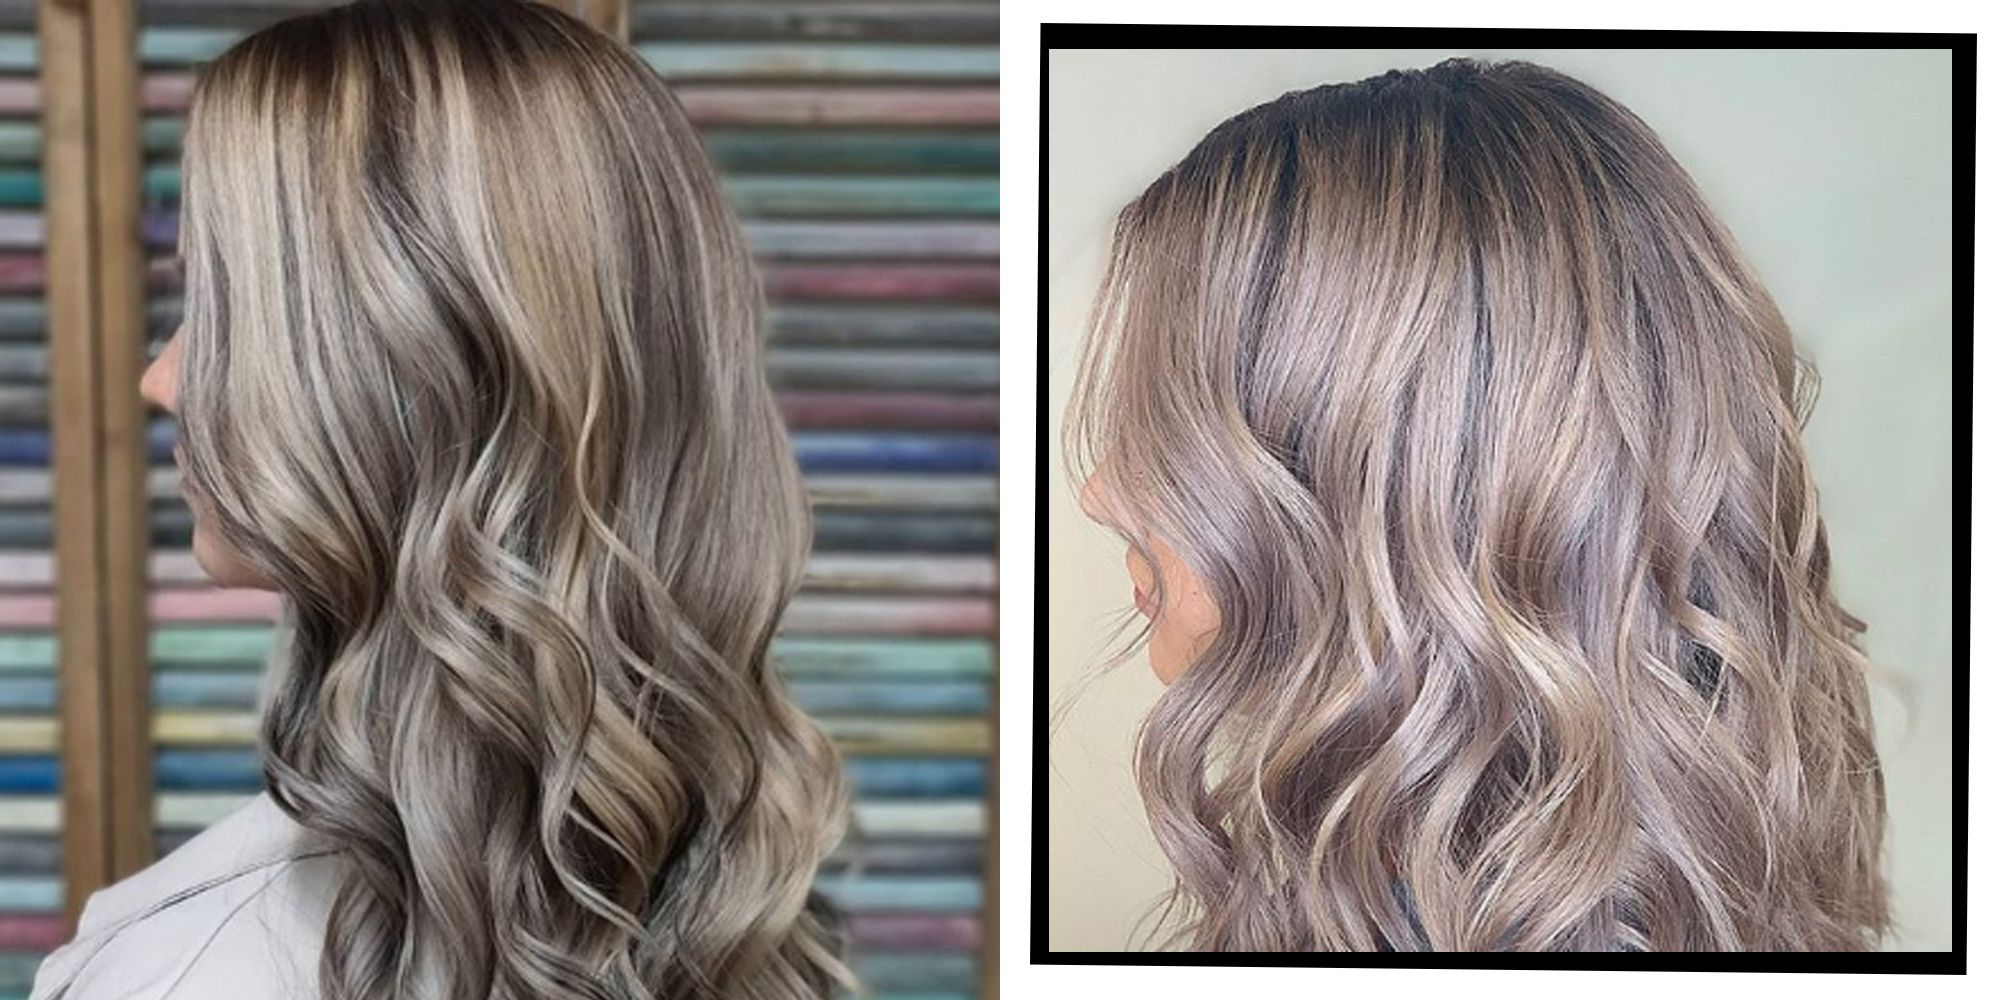 9 Blonde Hair Trends For 2019 – New Ways To Try Blonde Hair Inside Most Current Tiny Twist Hairstyles With Caramel Highlights (View 5 of 20)